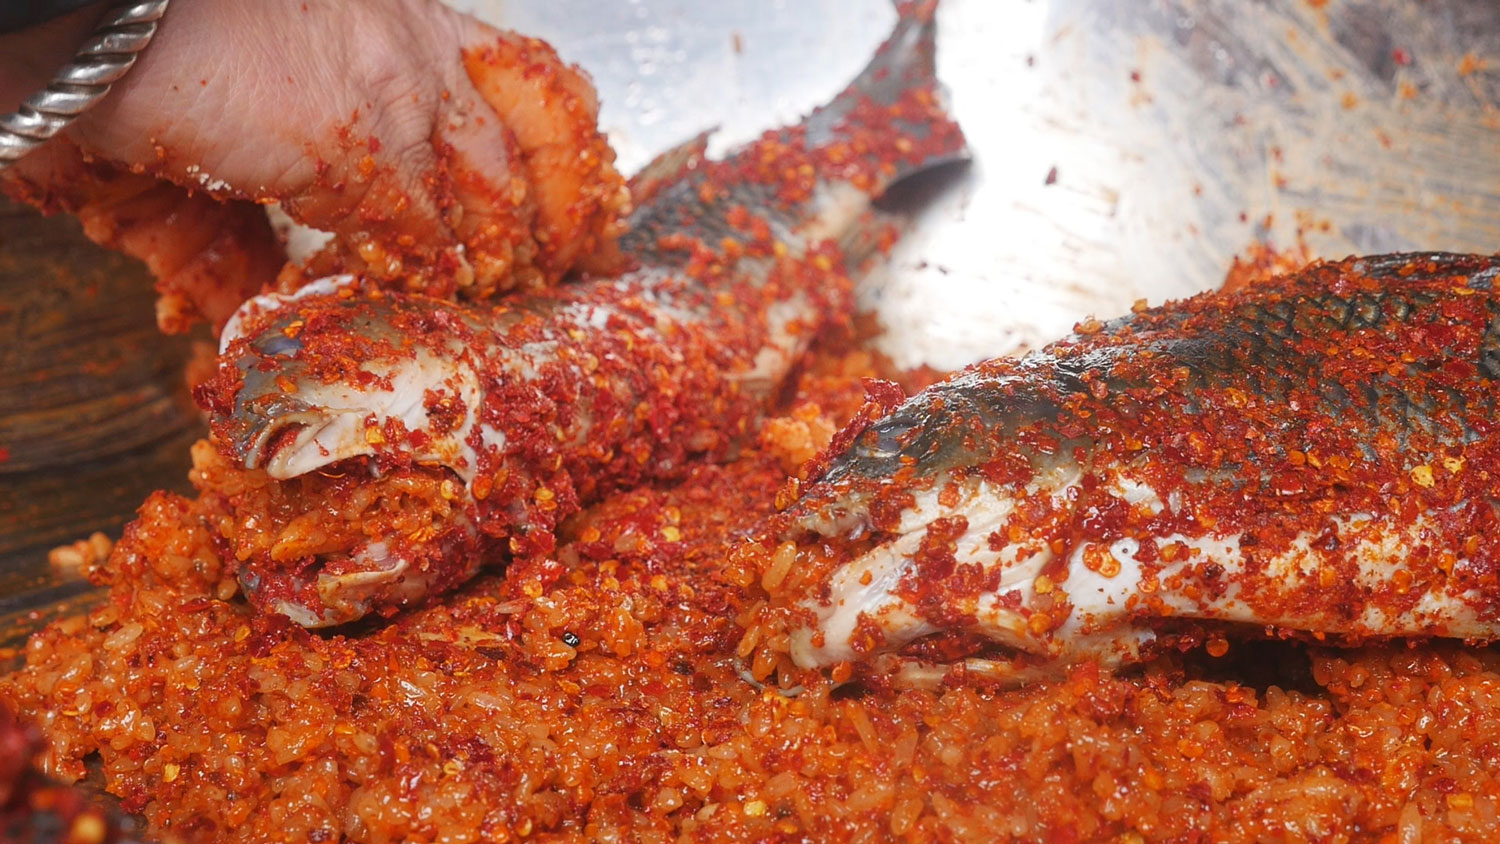 A mix of chillis, sticky rice, rice wine, and other seasonings are mixed into a sticky orange paste that adheres to the flesh of the fish, which are stuffed and folded with the mixture before going into the pickling jar.